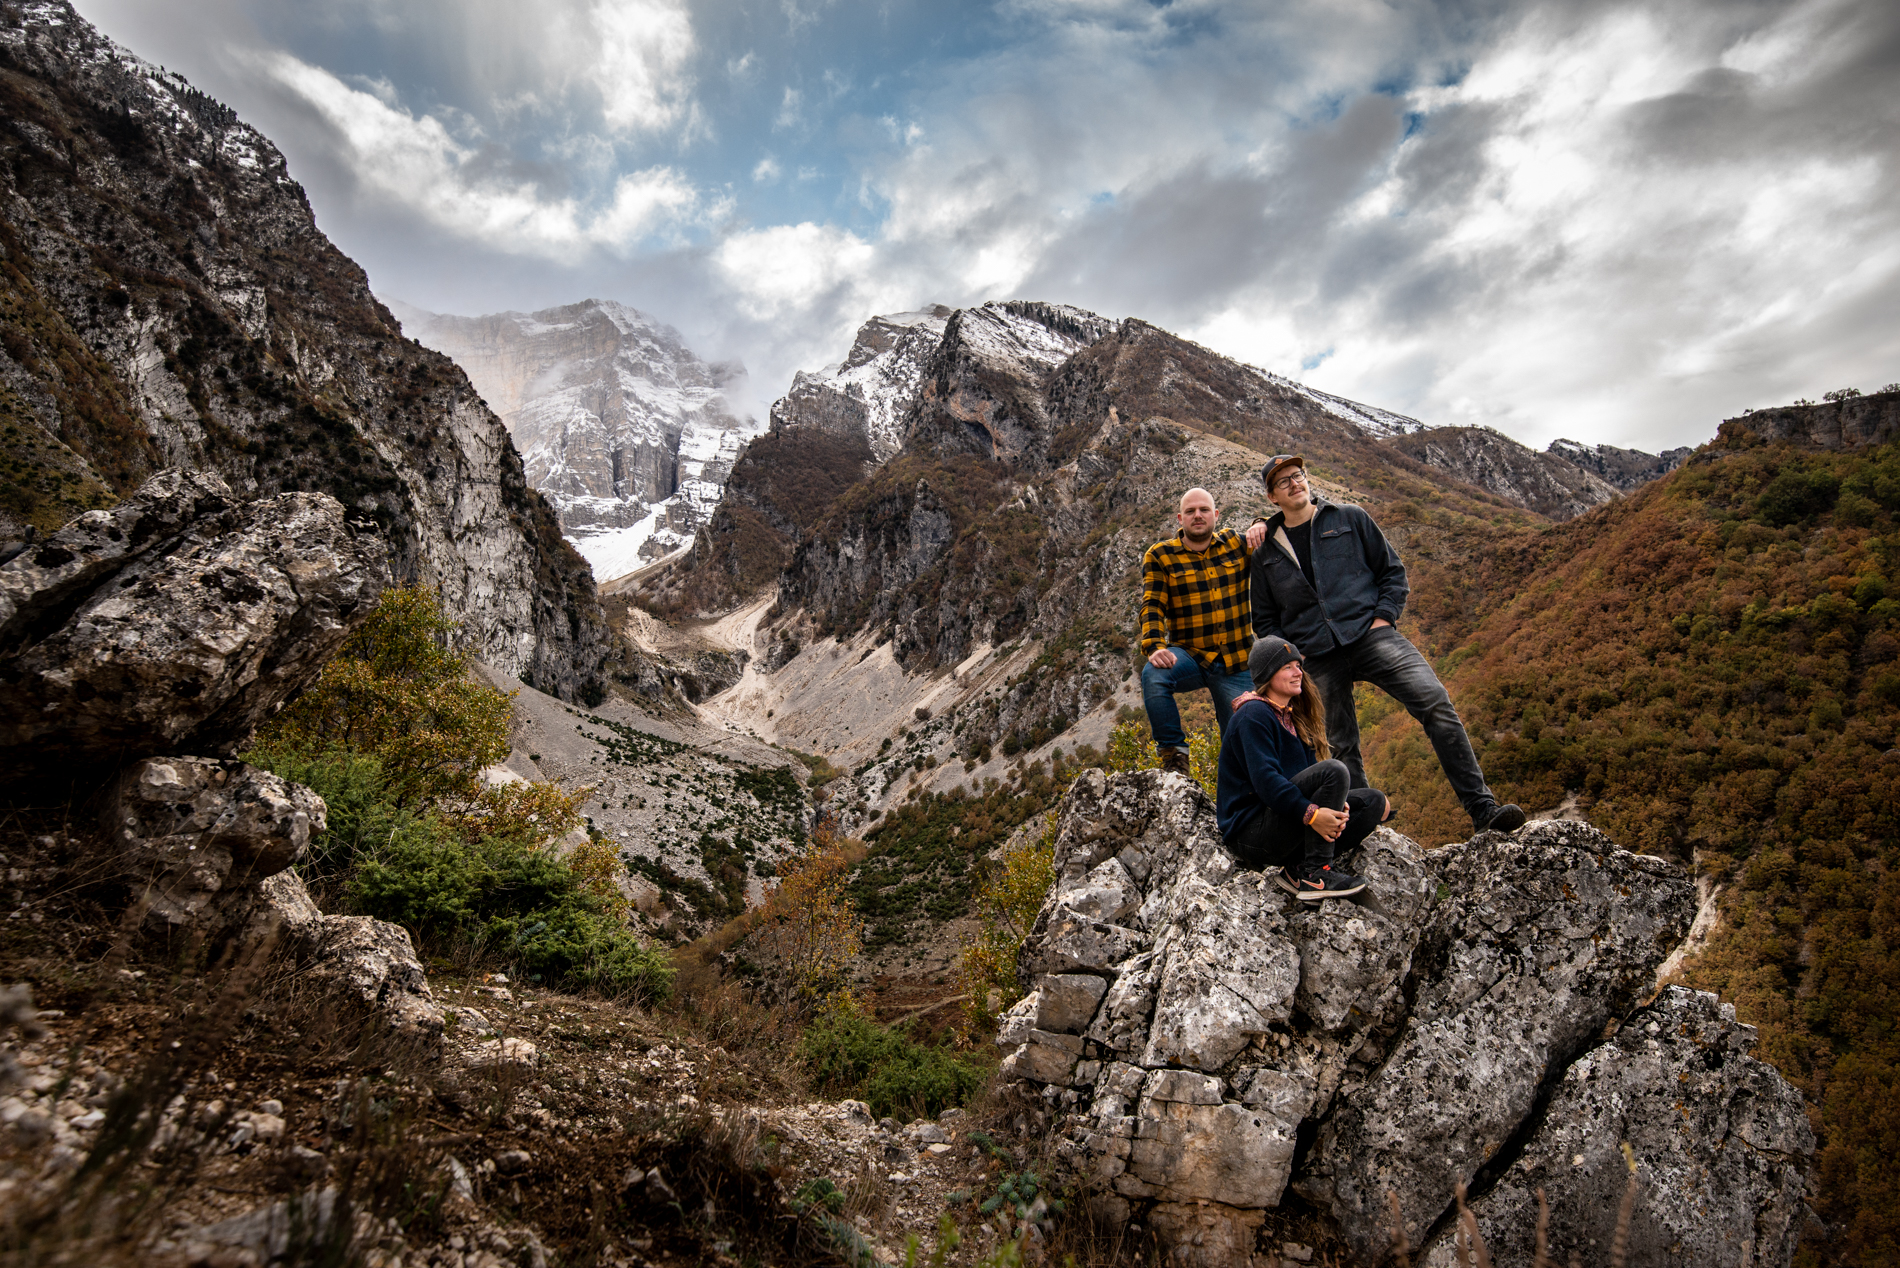 Band photo of Ellisandme and their friend, posing on a rock with snow mountains on the back. Përmet Gjirokäster, Albania.